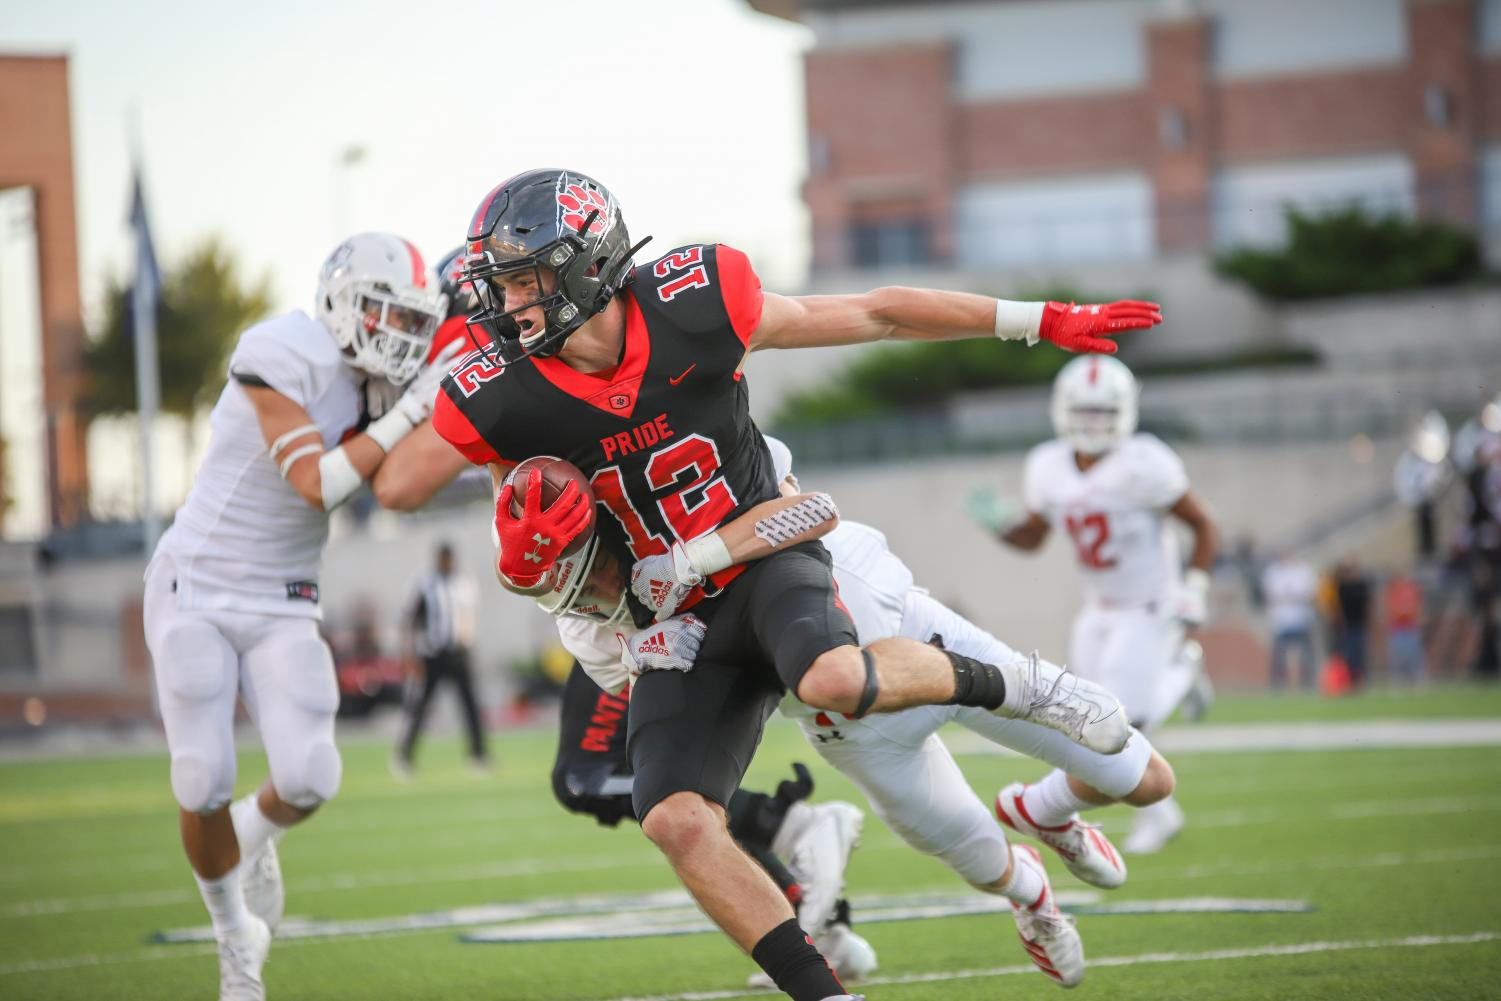 Colleyville+Heritage+wide+receiver+Brayden+Gerlich+%2812%29+attempts+to+run+the+ball+but+is+tackled+down+by+sophomore+Trent+Rucker+during+the+first+quarter.